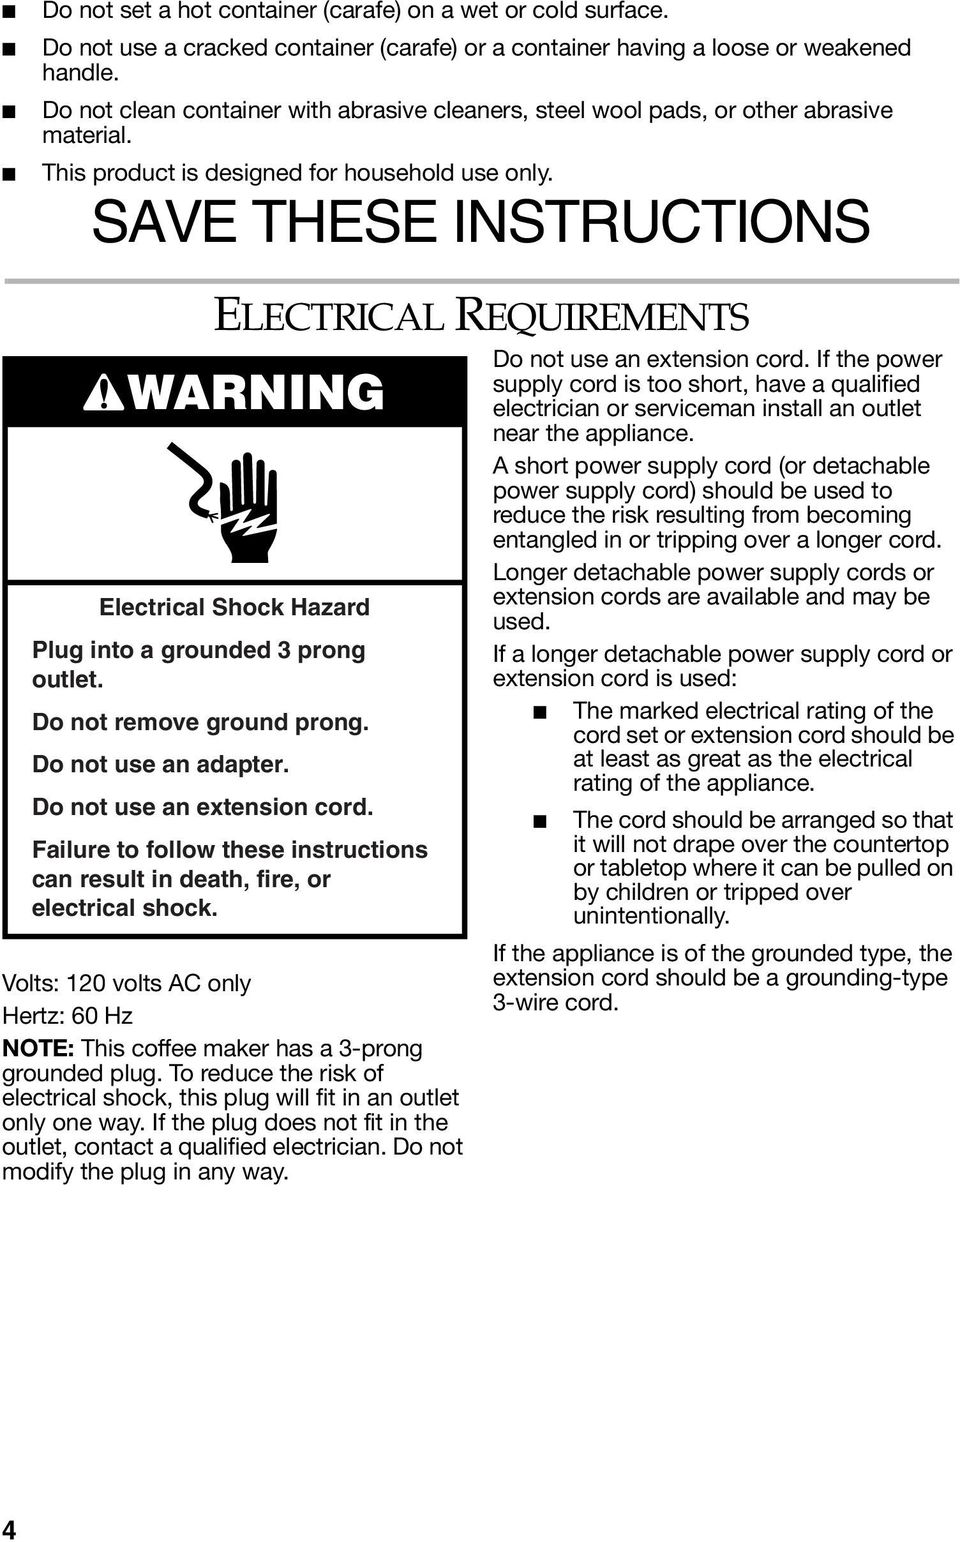 SAVE THESE INSTRUCTIONS ELECTRICAL REQUIREMENTS WARNING Electrical Shock Hazard Plug into a grounded 3 prong outlet. Do not remove ground prong. Do not use an adapter. Do not use an extension cord.